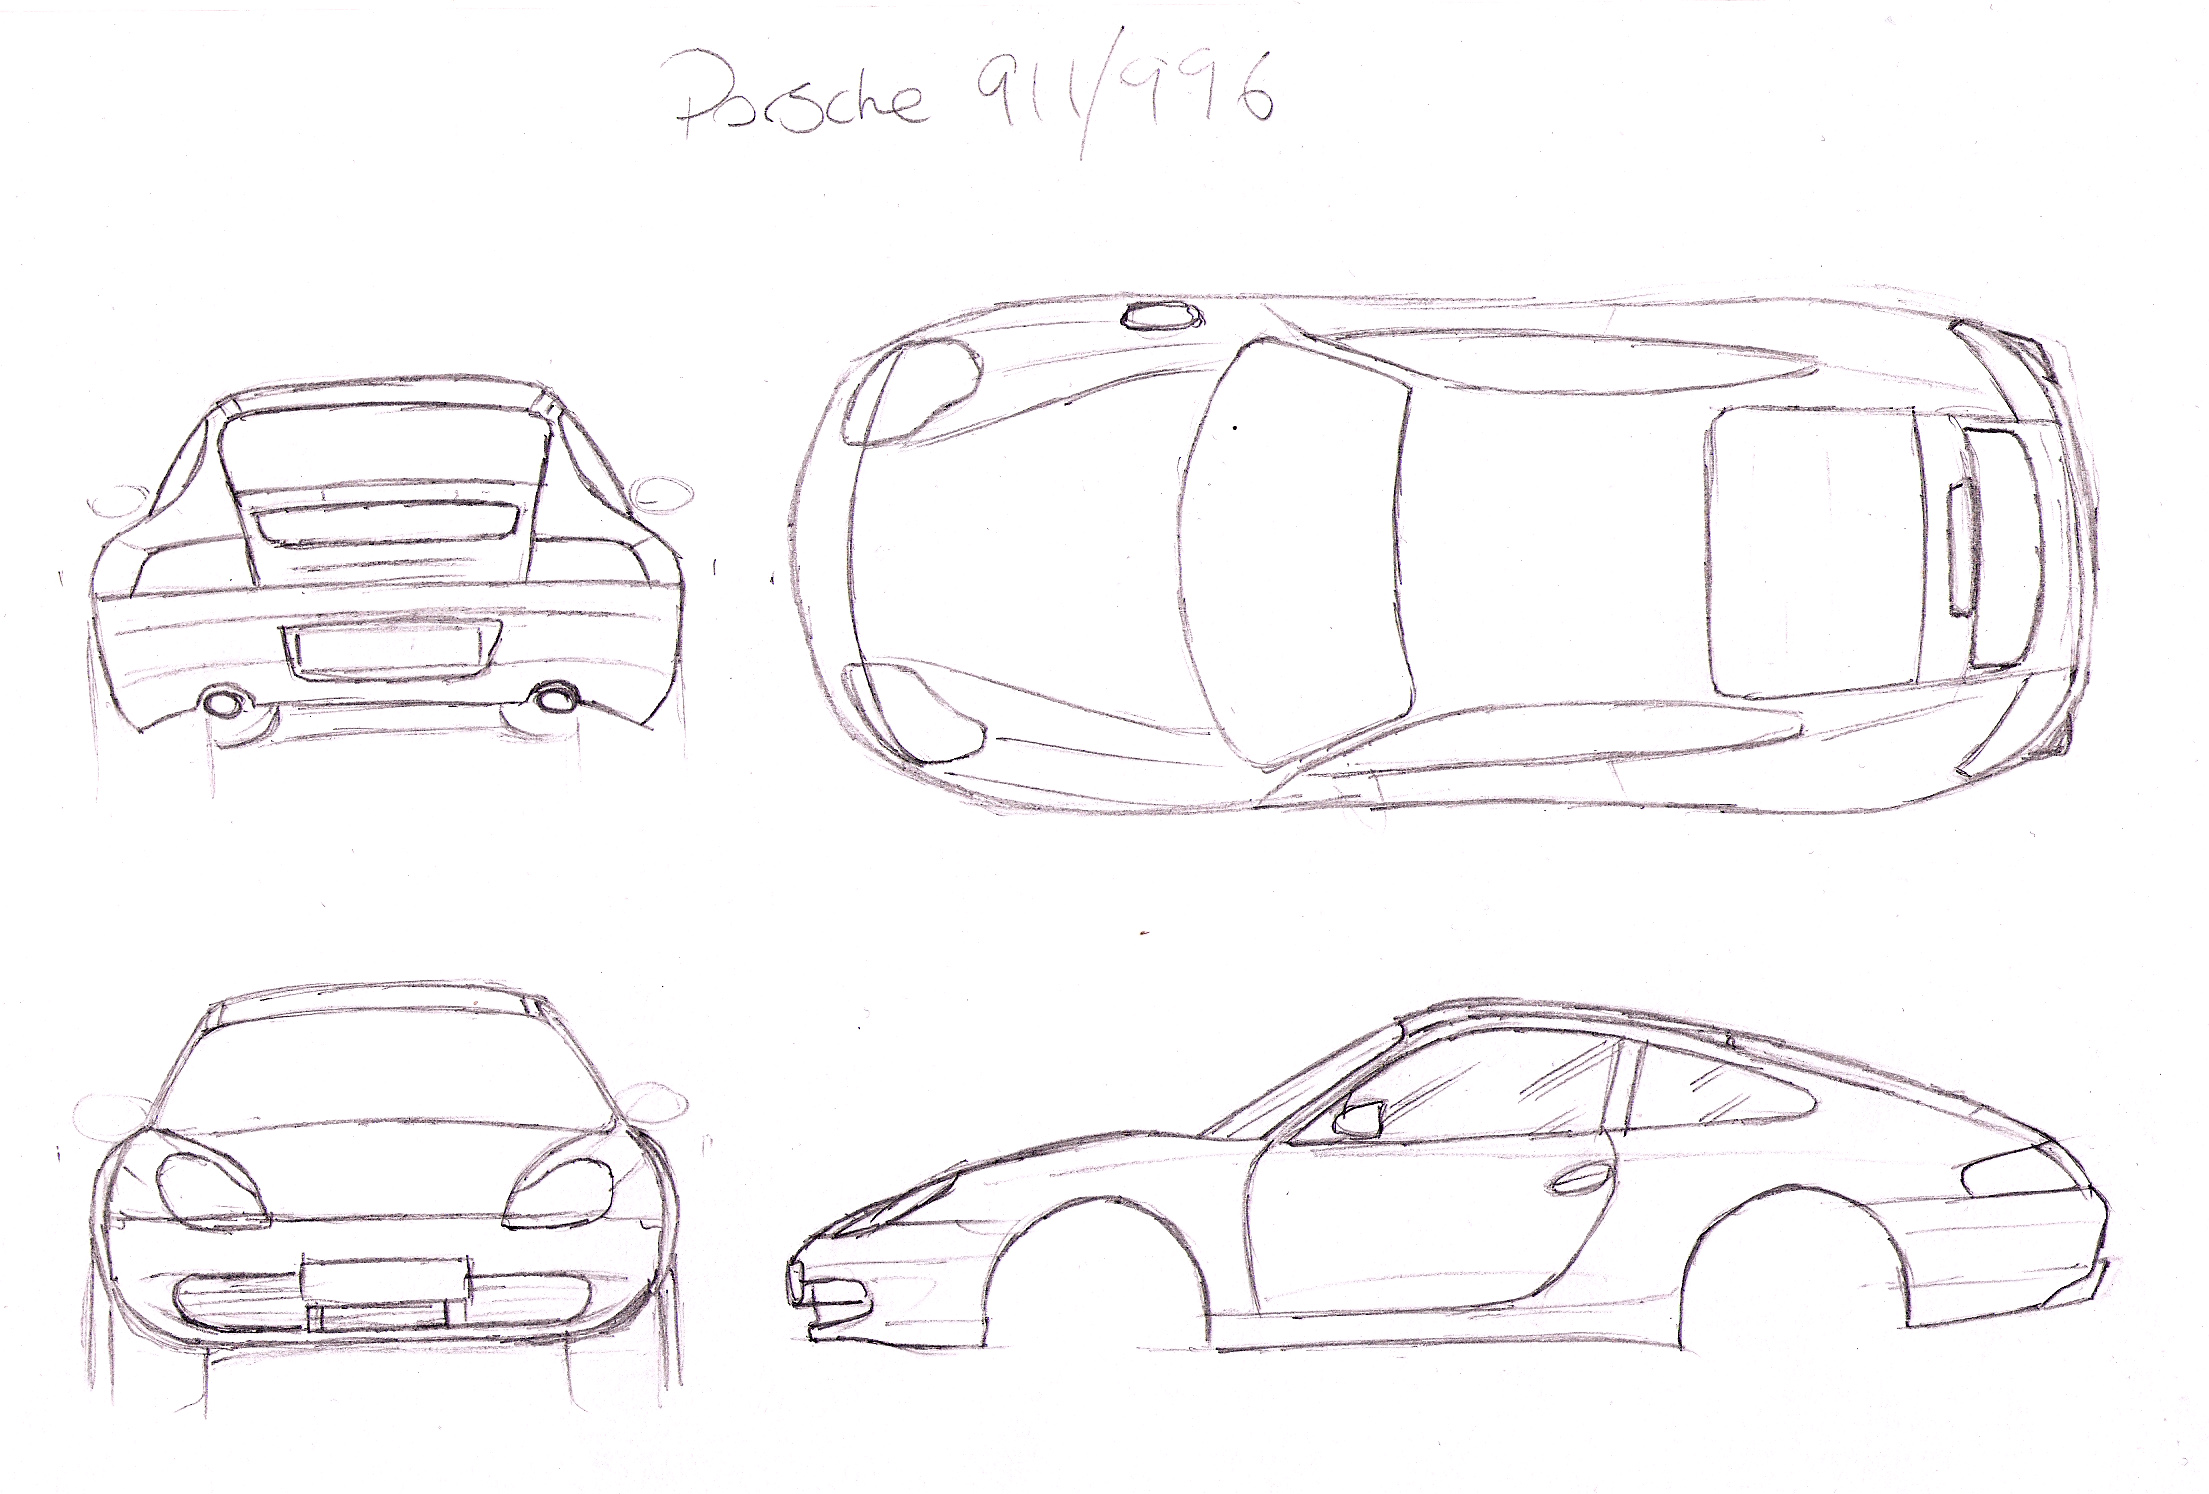 Porsche 911 996 Orthographic Drawing